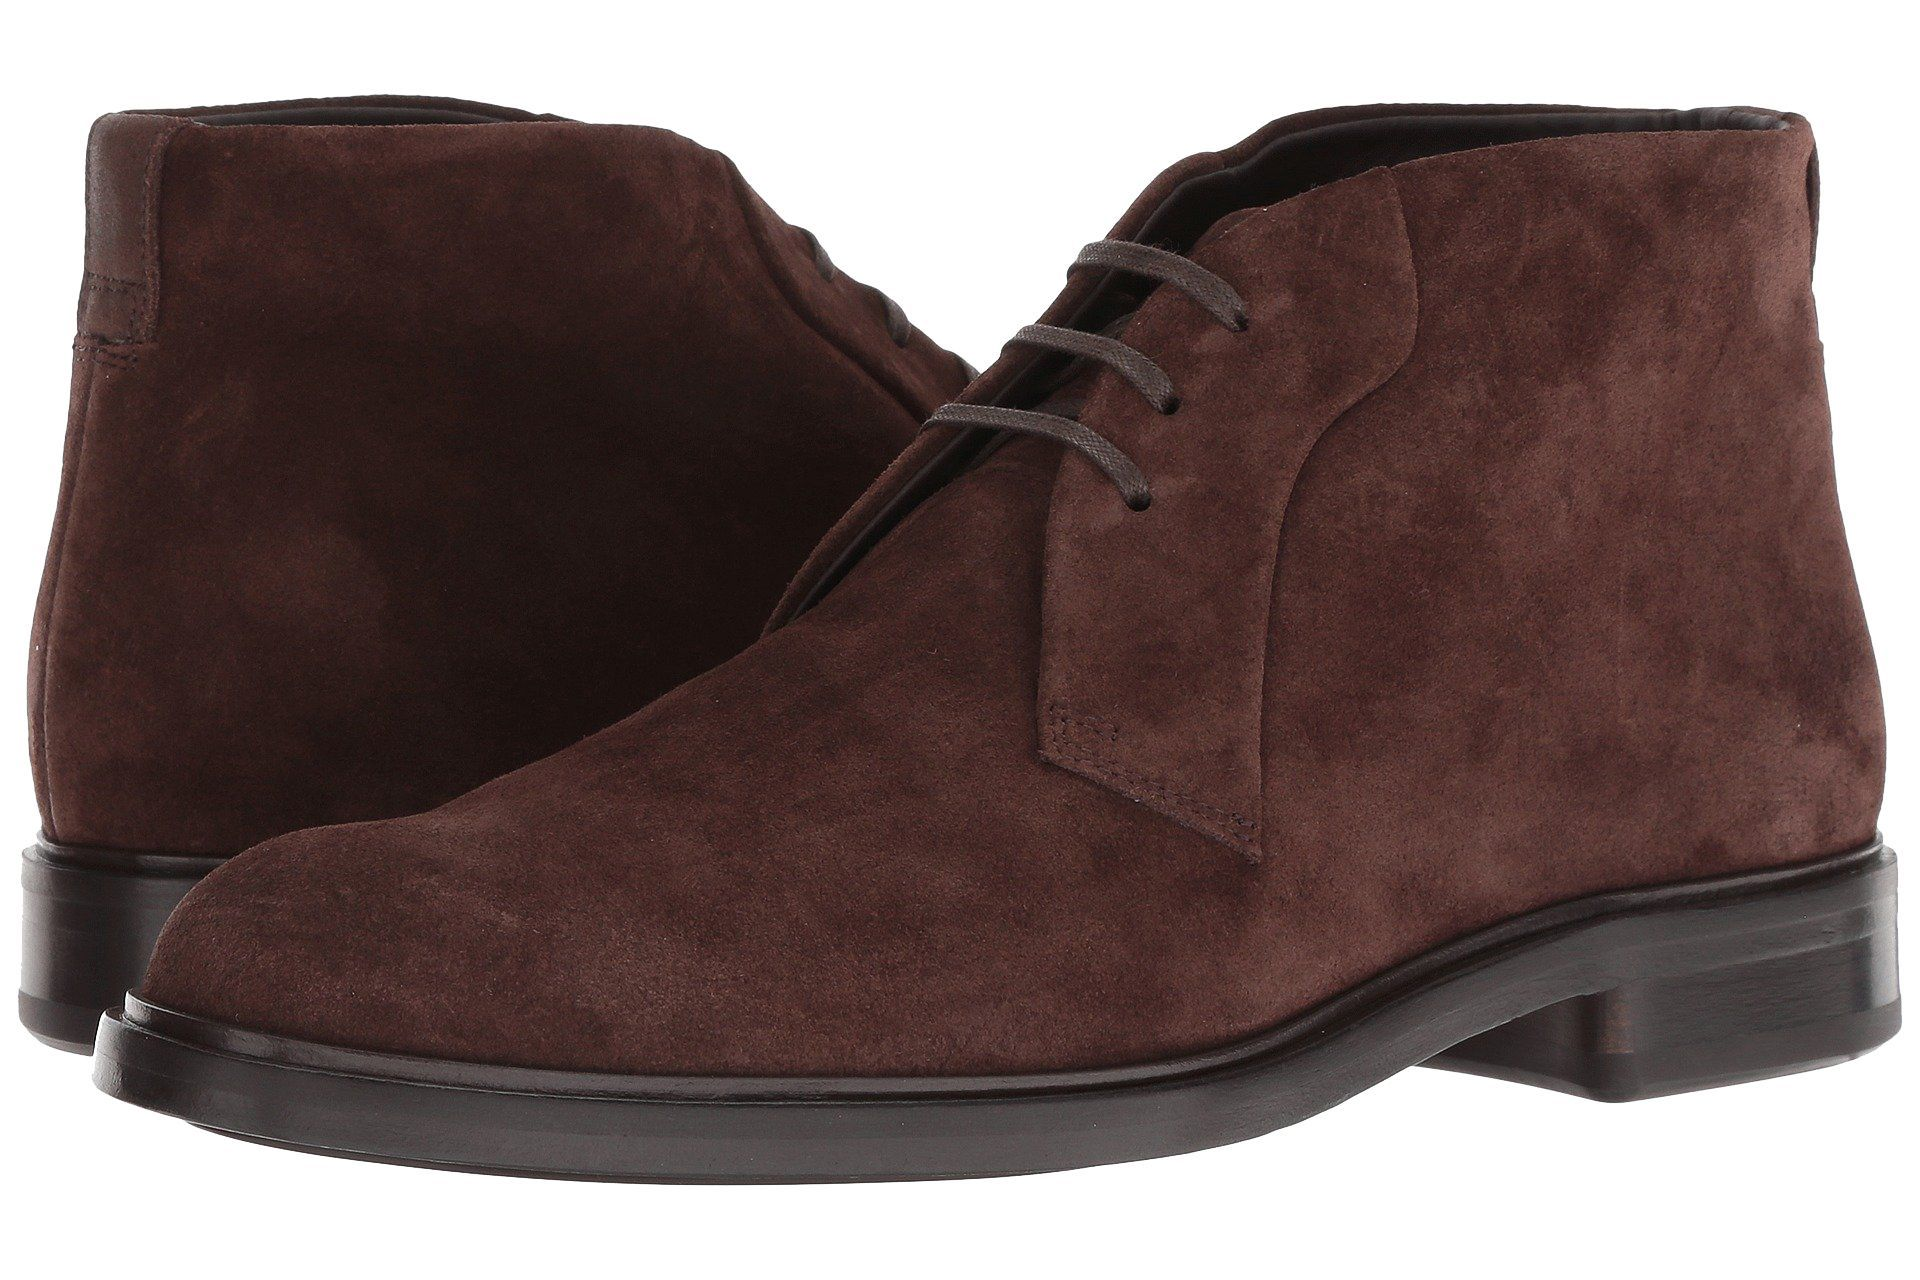 Vince Brunswick zappos.com $315.00 SHOP A brown leather boot wears as well with dark denim as it does a tailored suit.